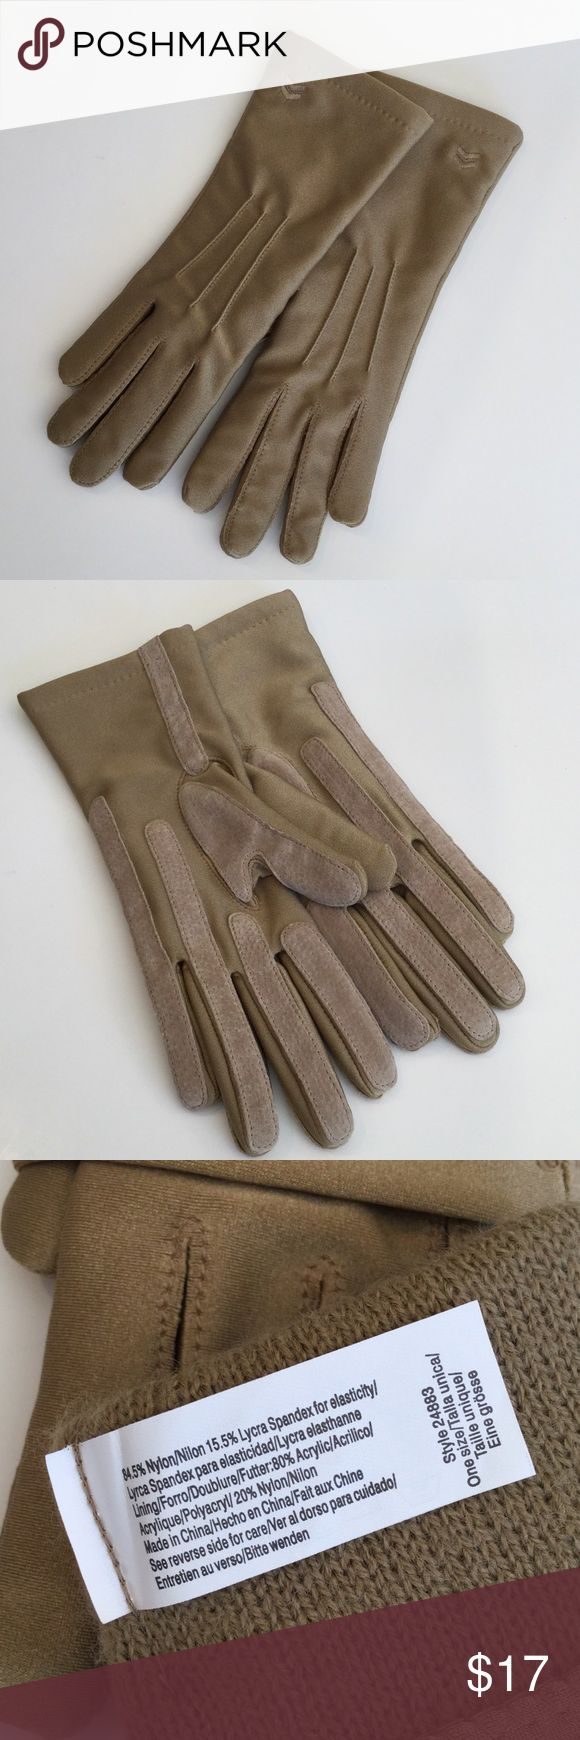 Isotoner womens leather gloves with fleece lining - Isotoner Gloves In Gold